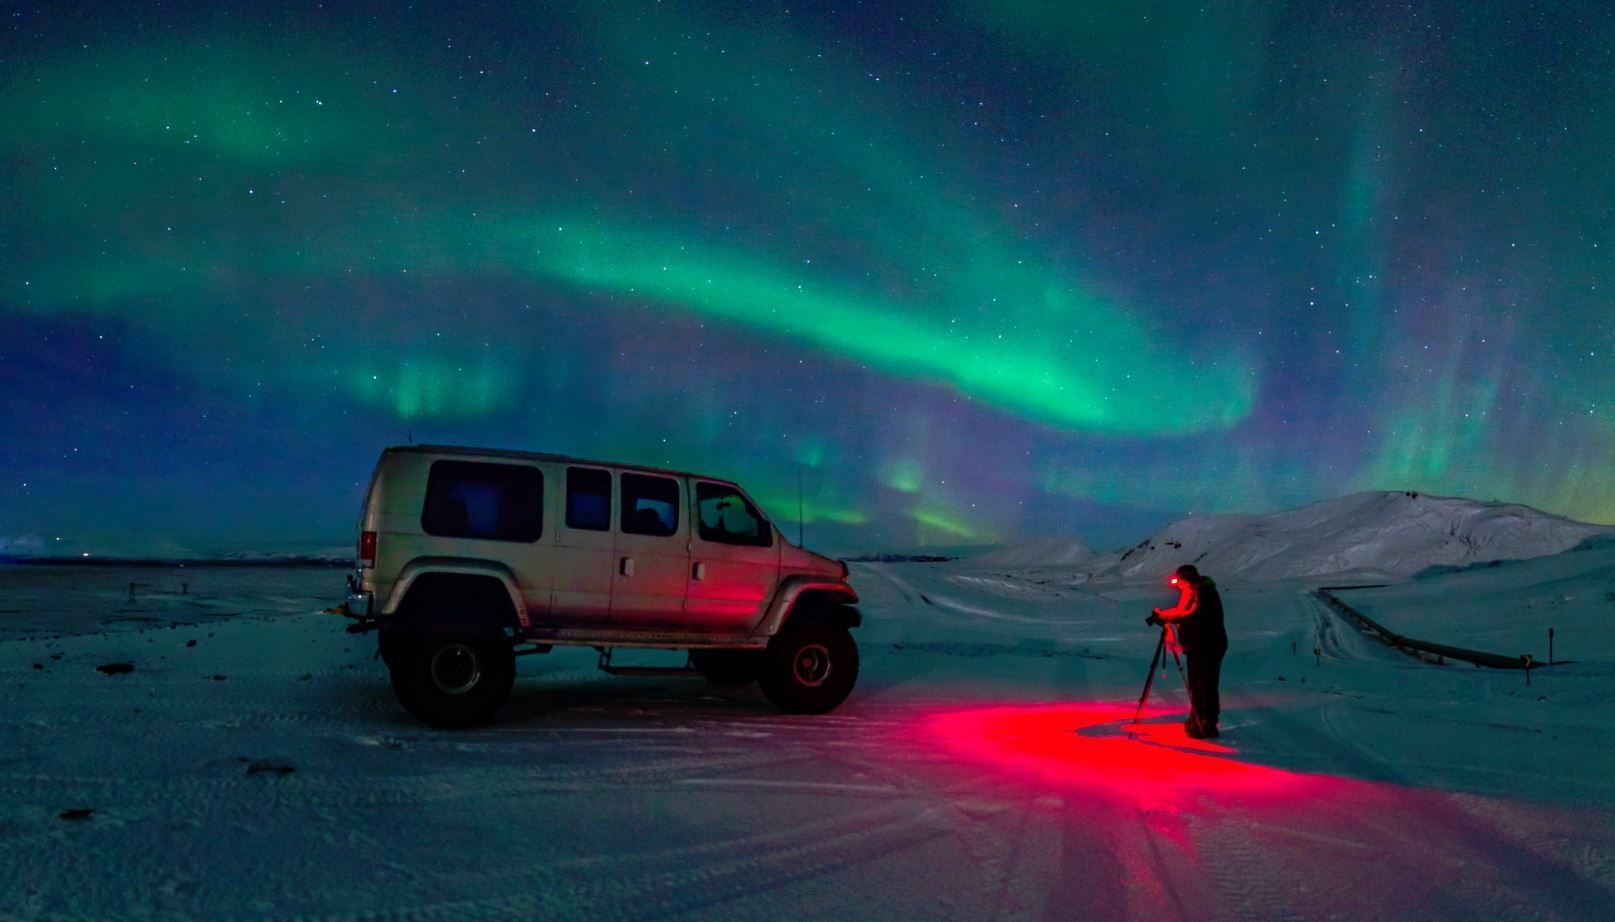 Super Jeep tour with the Northern Lights